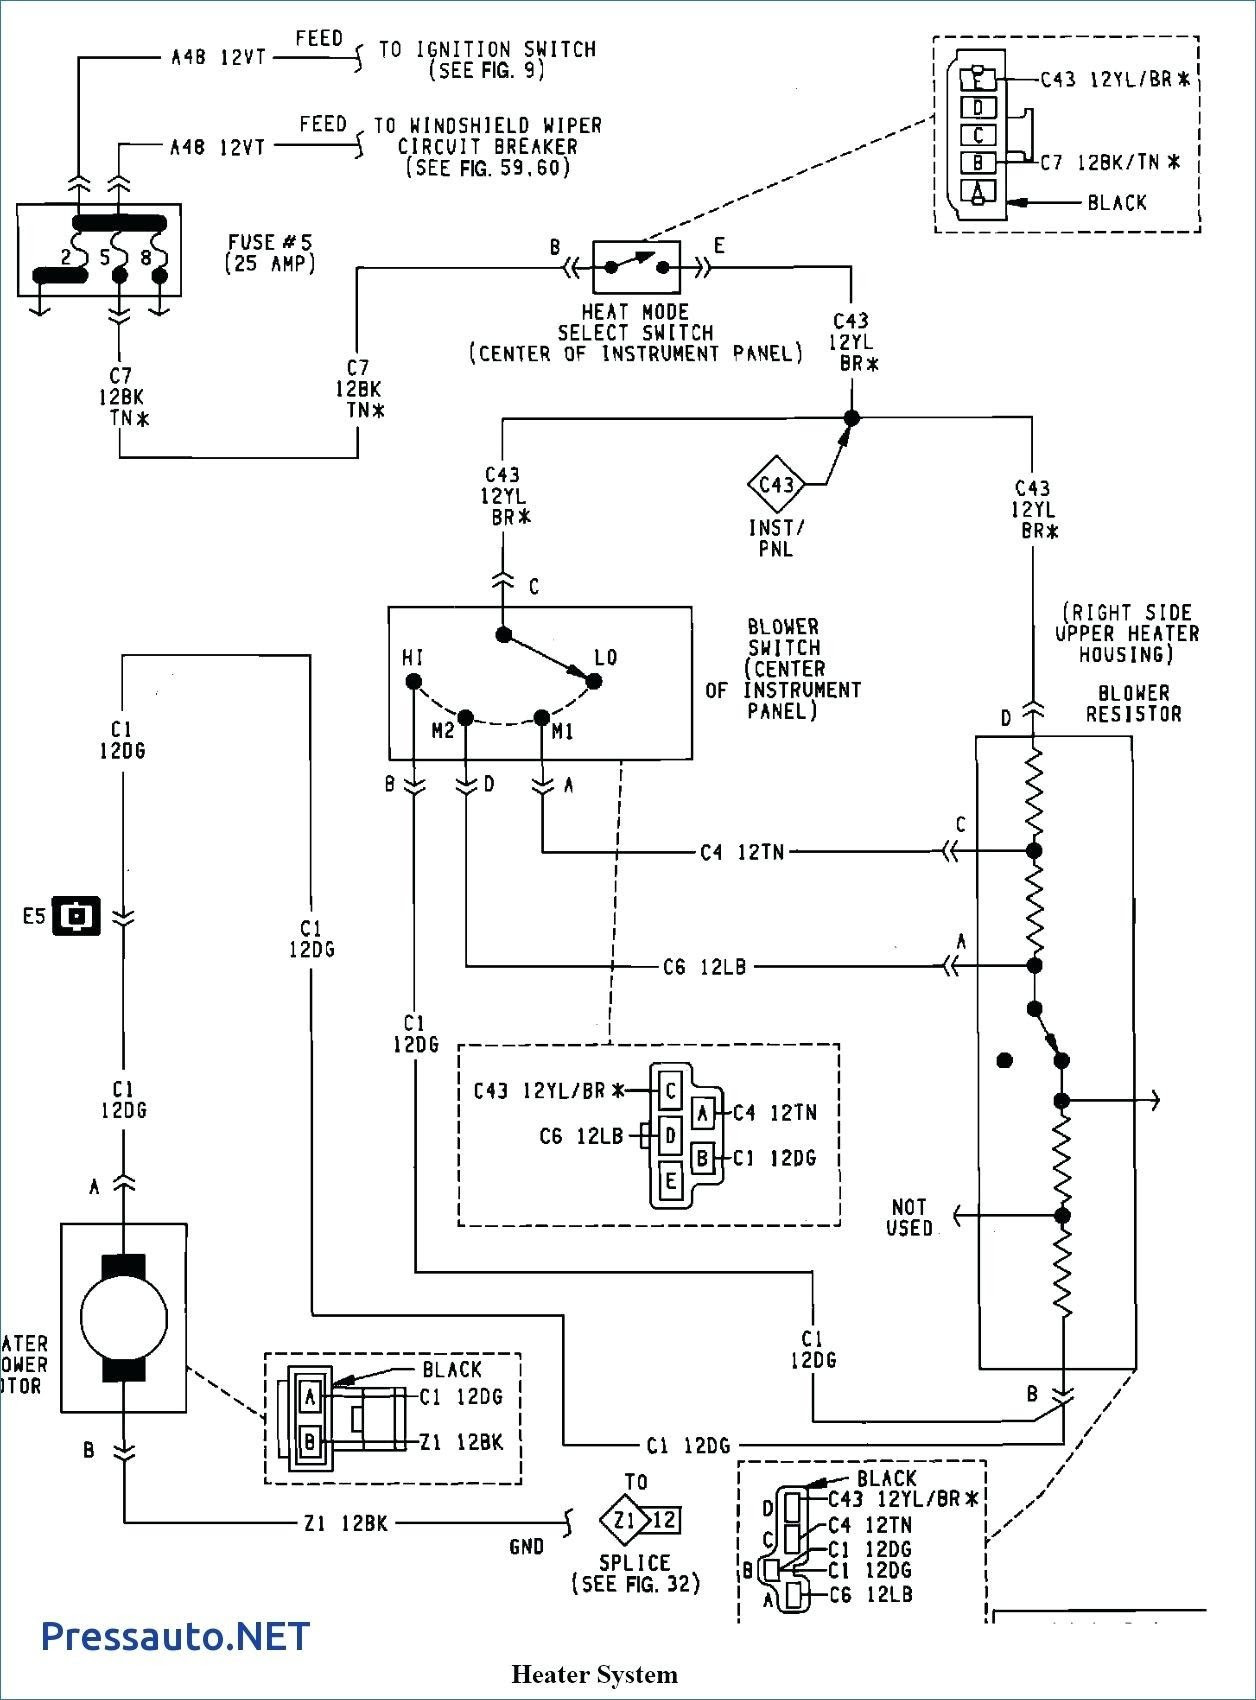 2001 Jeep Cherokee Radio Wiring Diagram - Wiring Diagram ...